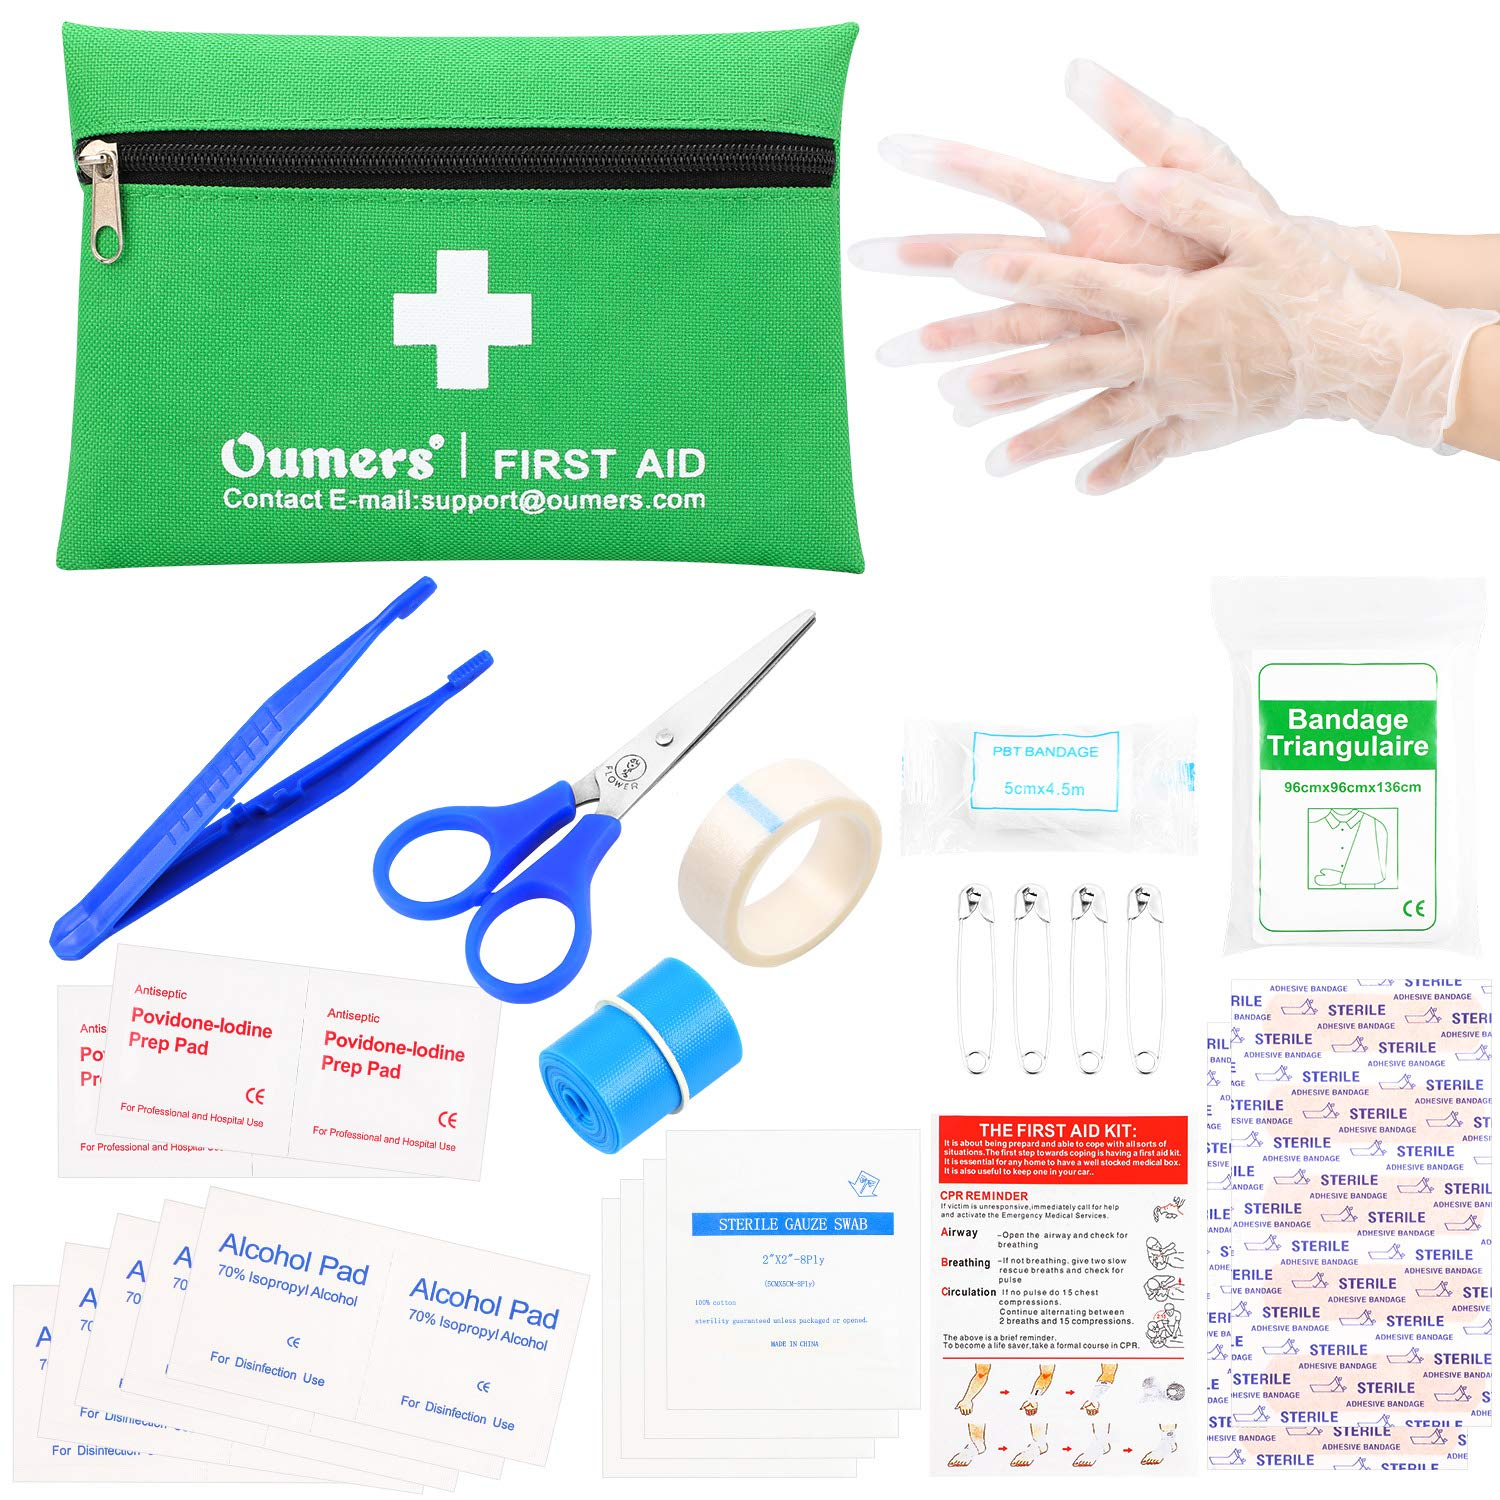 Oumers First Aid Kit, Portable Medical Survival Bag. Mini Compact First Aid Bag Emergency Kit for Home, Car, Travel, Workplace and Outdoor Activies Emergency Rescue Outdoor Gear